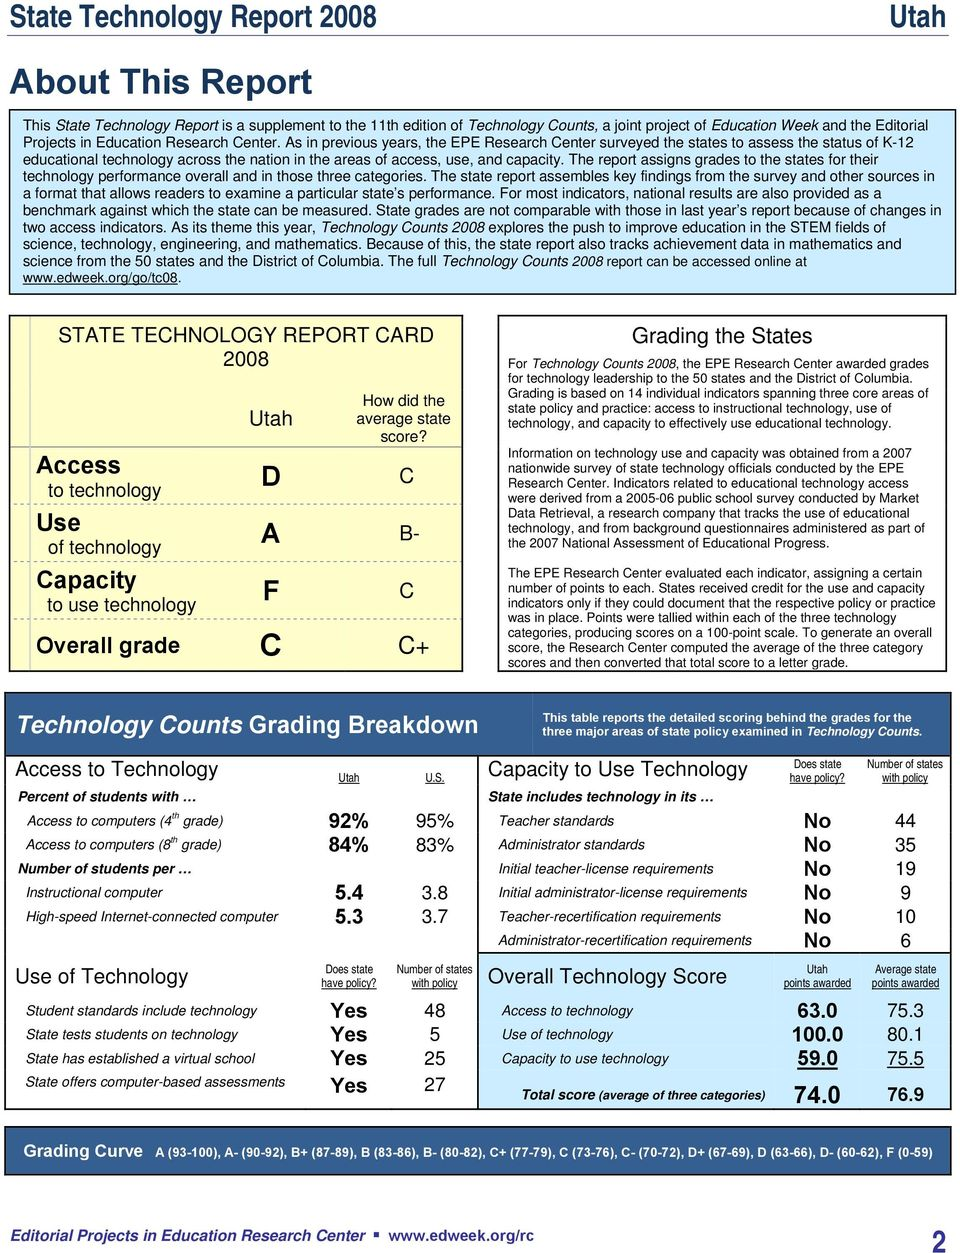 The report assigns grades to the states for their technology performance overall and in those three categories.